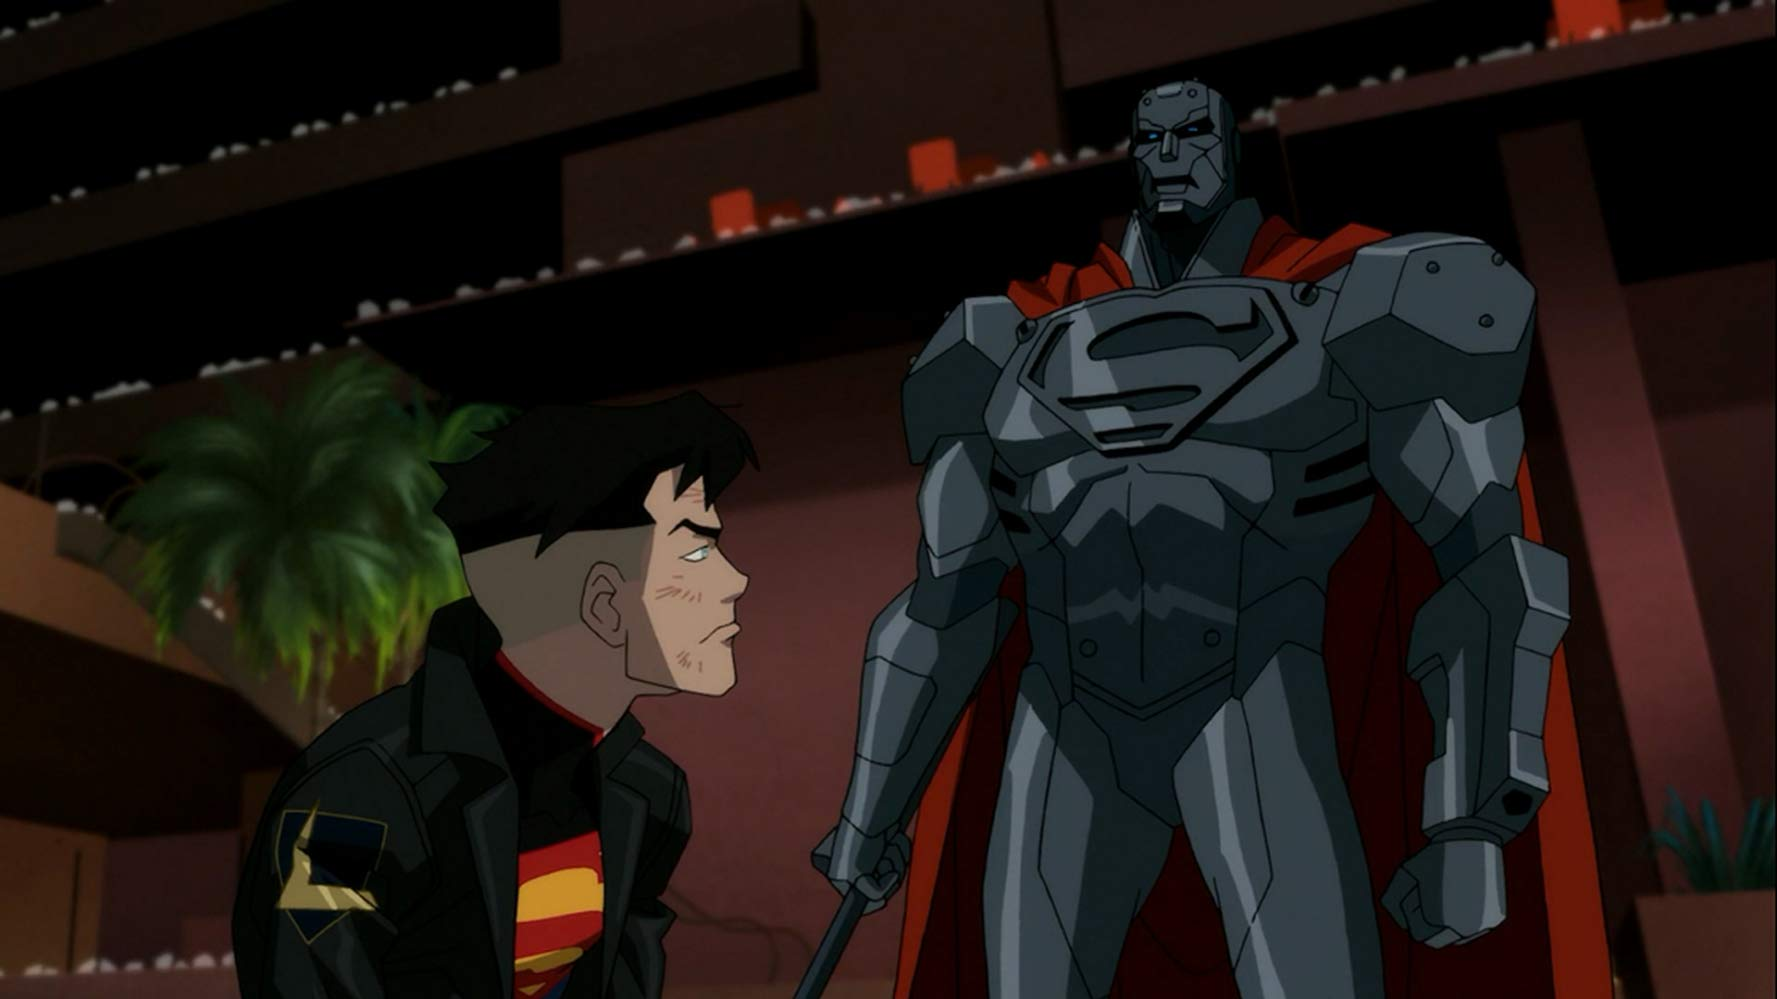 Superboy (voiced by Cameron Monaghan) and Steel (voiced by Chess Williams) - two of the Superman impostors in Reign of the Supermen (2019)